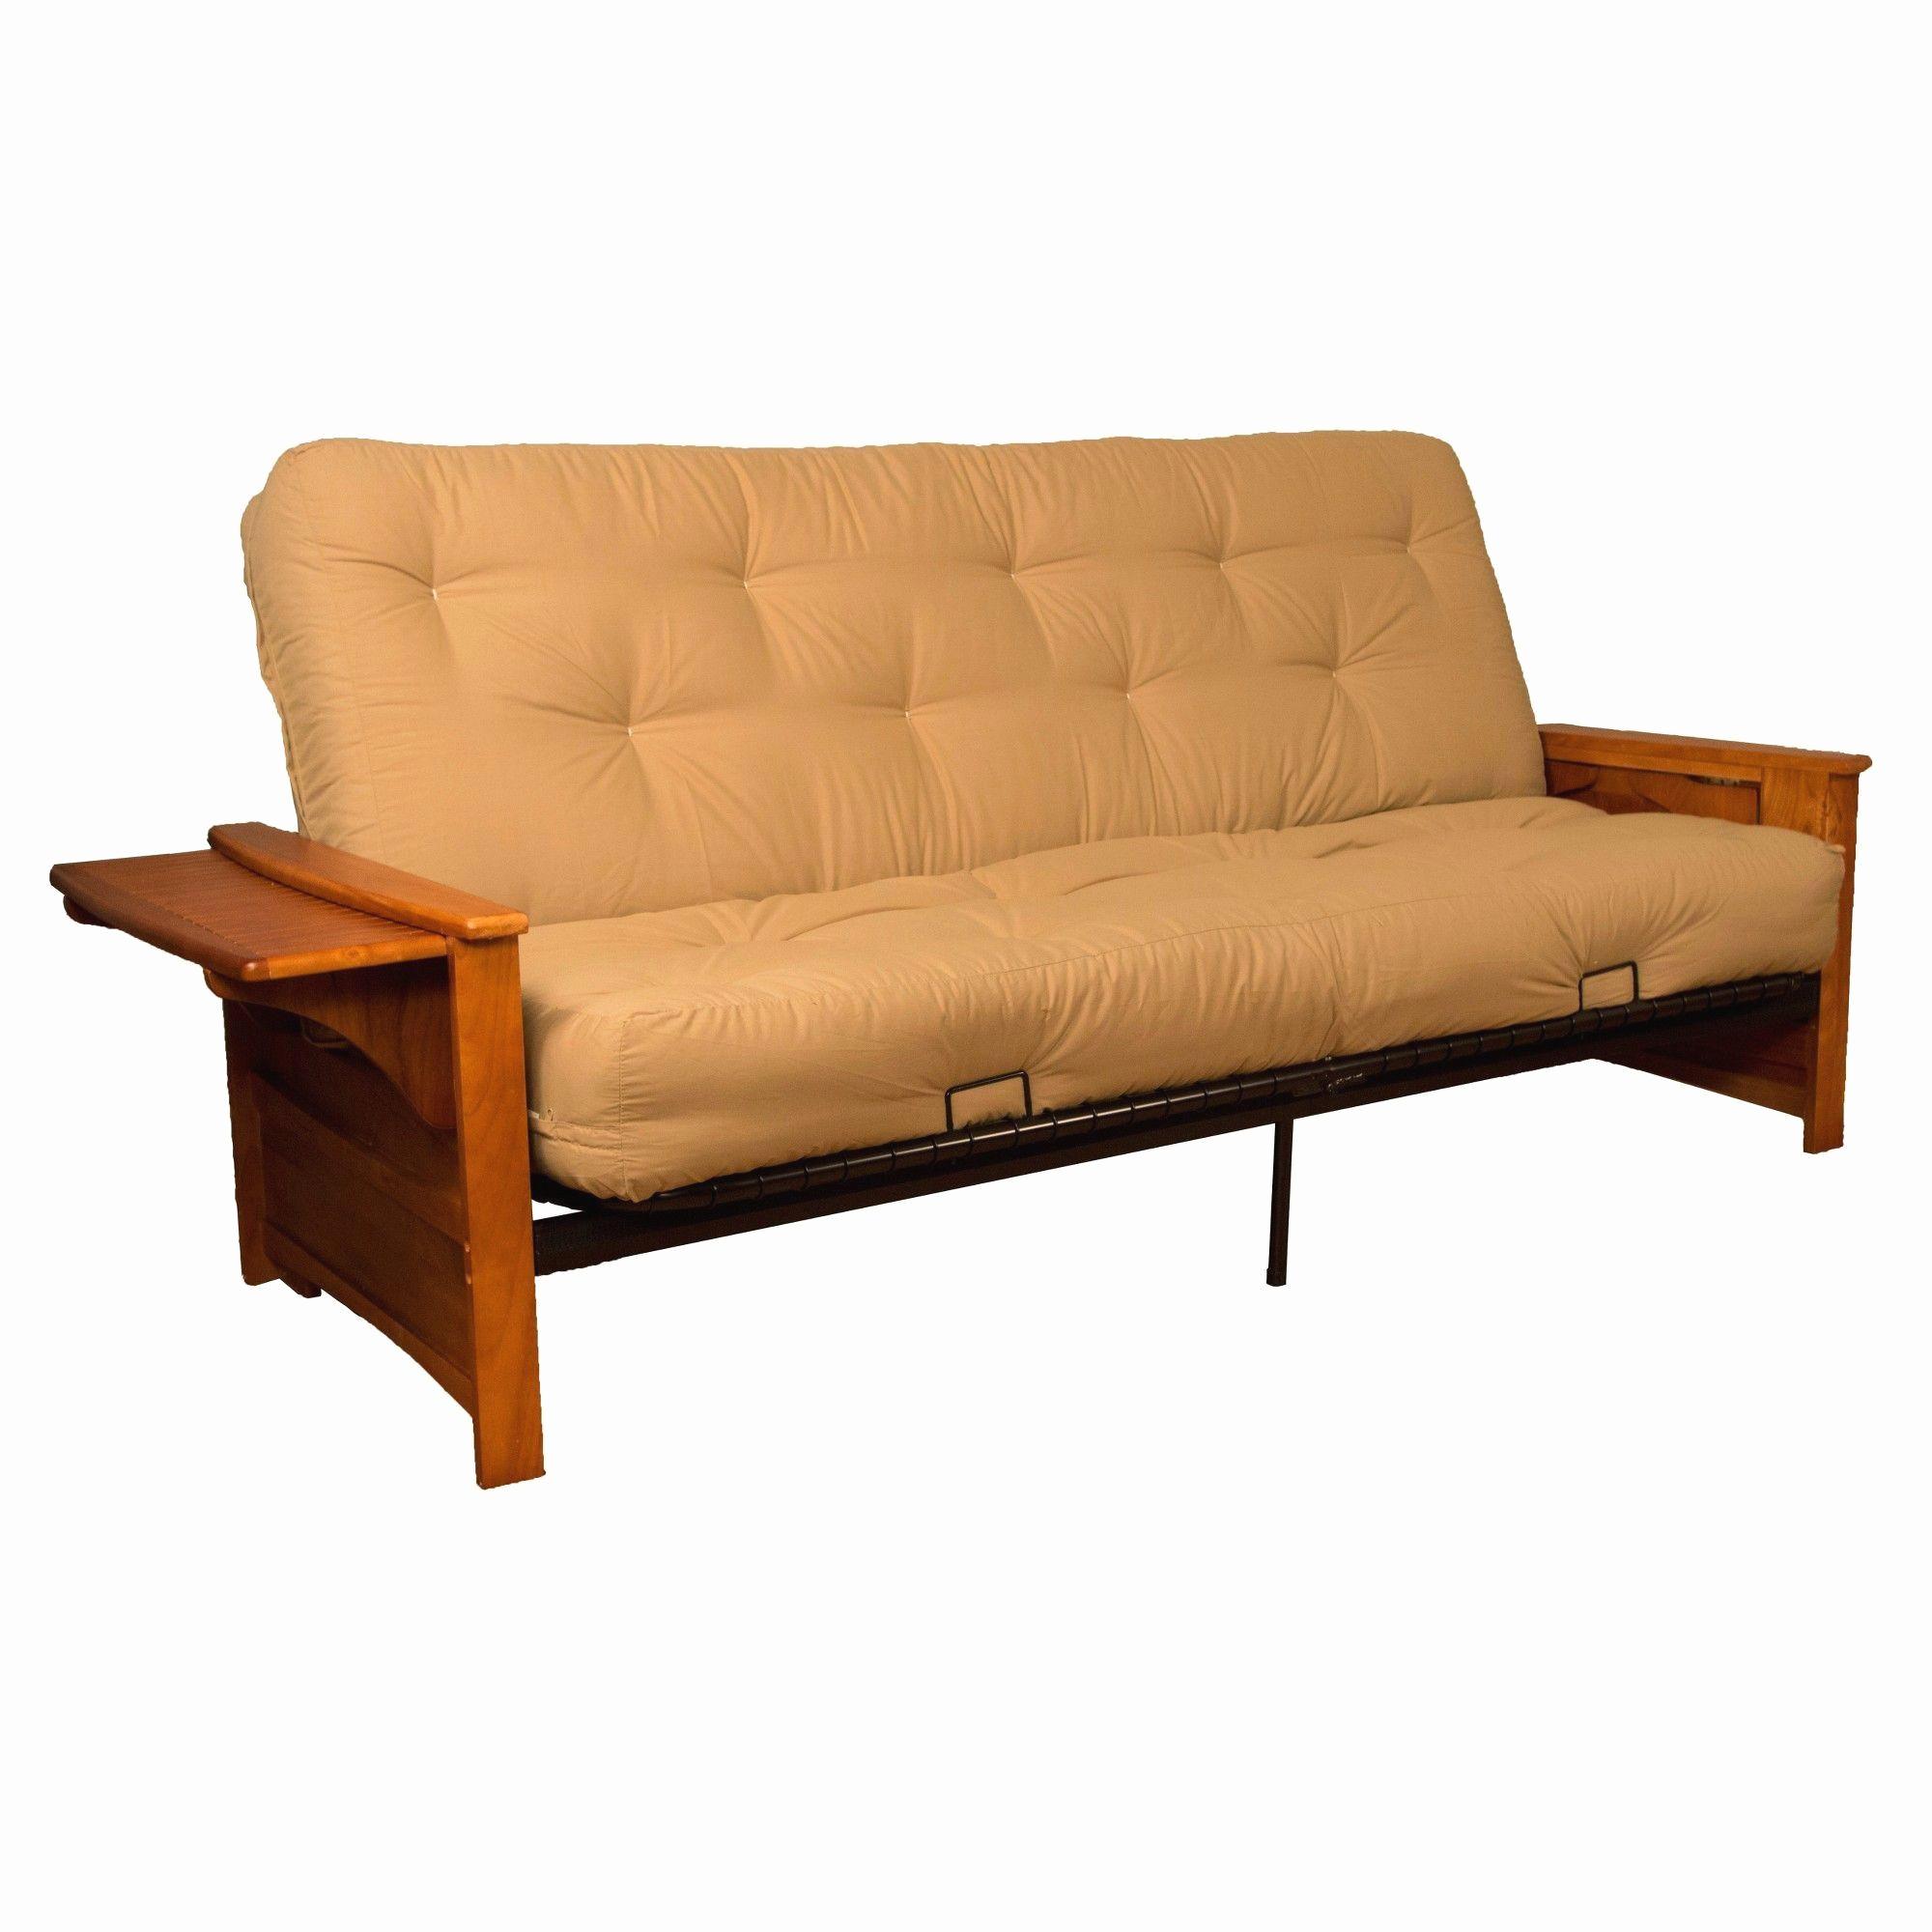 Couch Grau Weiß Einzigartig Design Couch Leder Free Joop Living Modell sofa In Leder Longlife